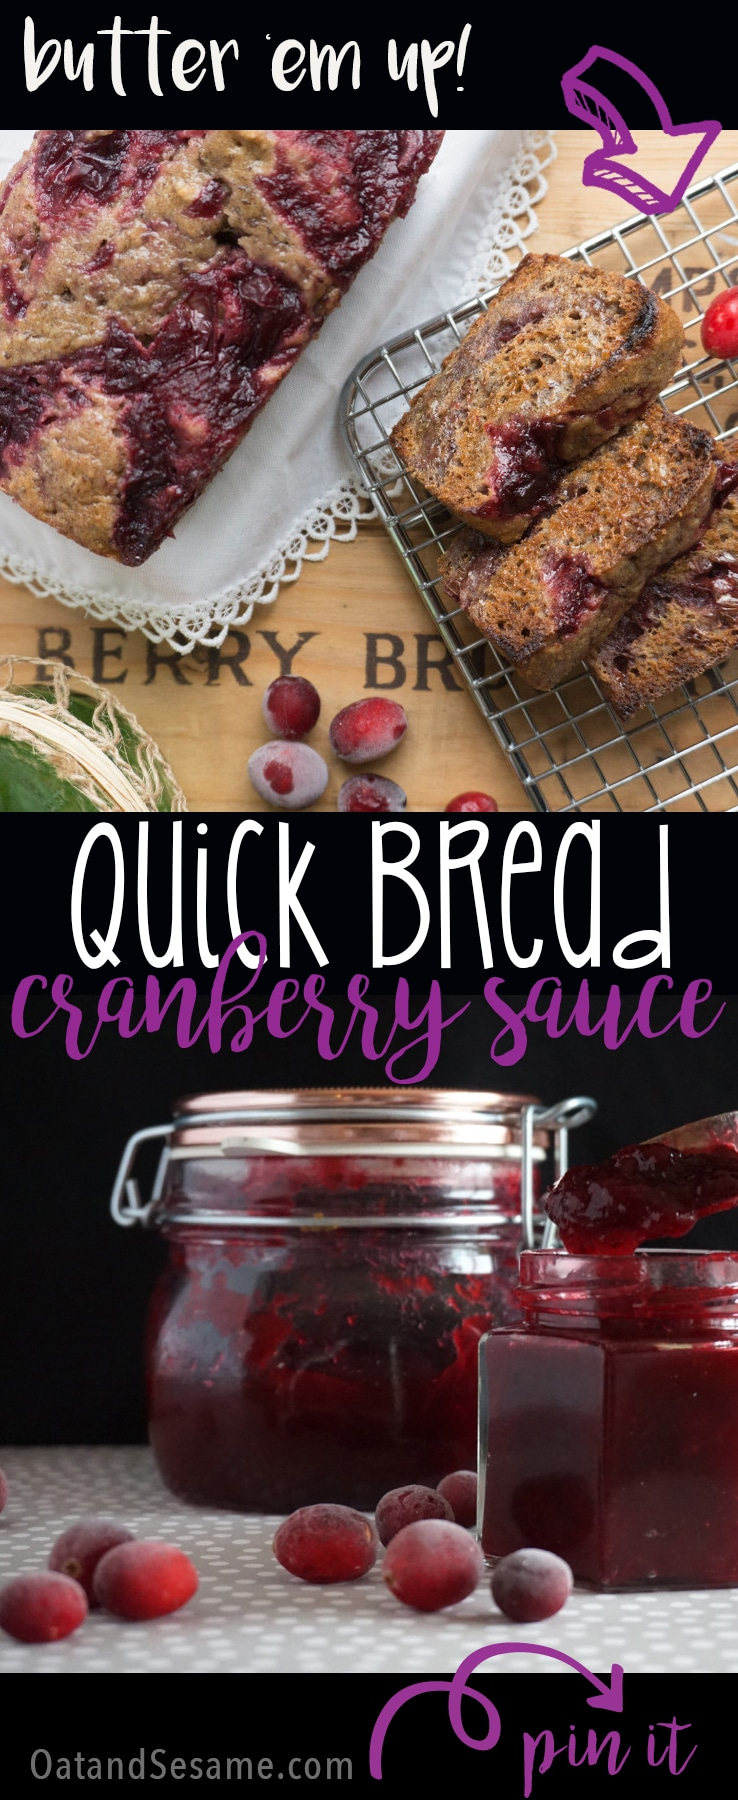 Need a way to use up all that CRANBERRY SAUCE?  Make QUICK BREAD! | recipe at OatandSesame.com